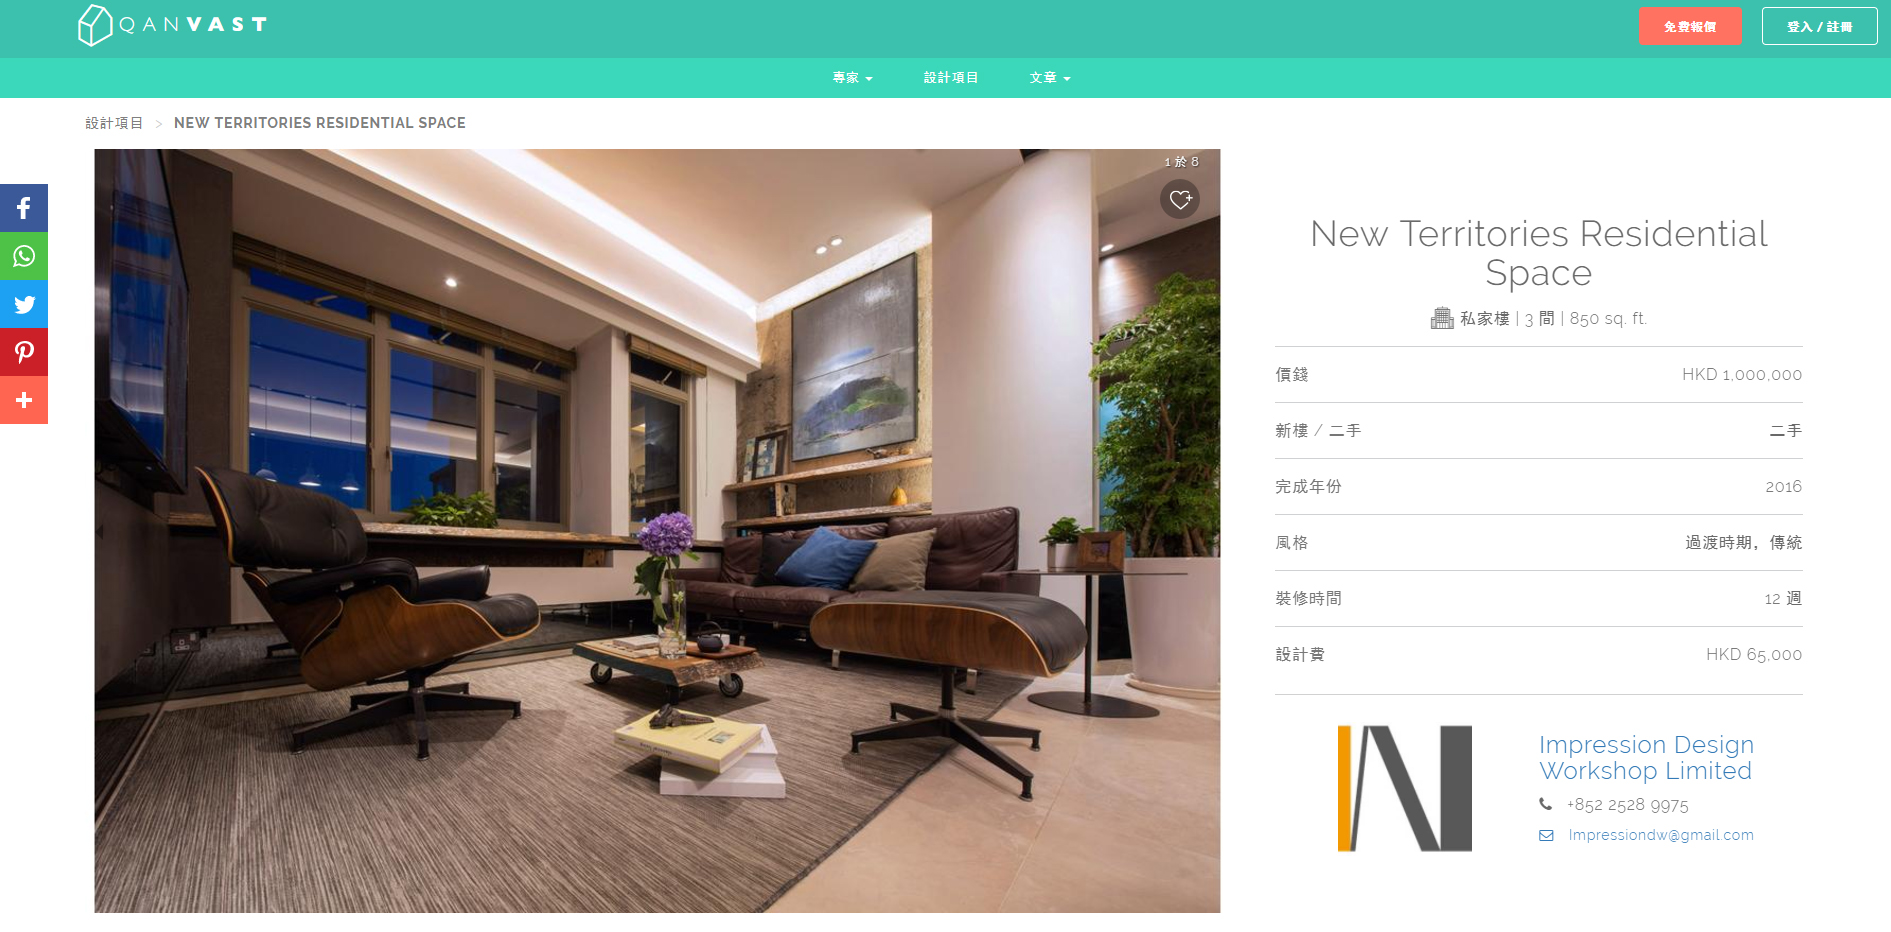 Qanvast Media - New Territories Residential Space https://qanvast.com/hk/interior-design-hongkong/hao-shi-nei-she-ji-you-xian-gong-si-new-territories-residential-space-6421